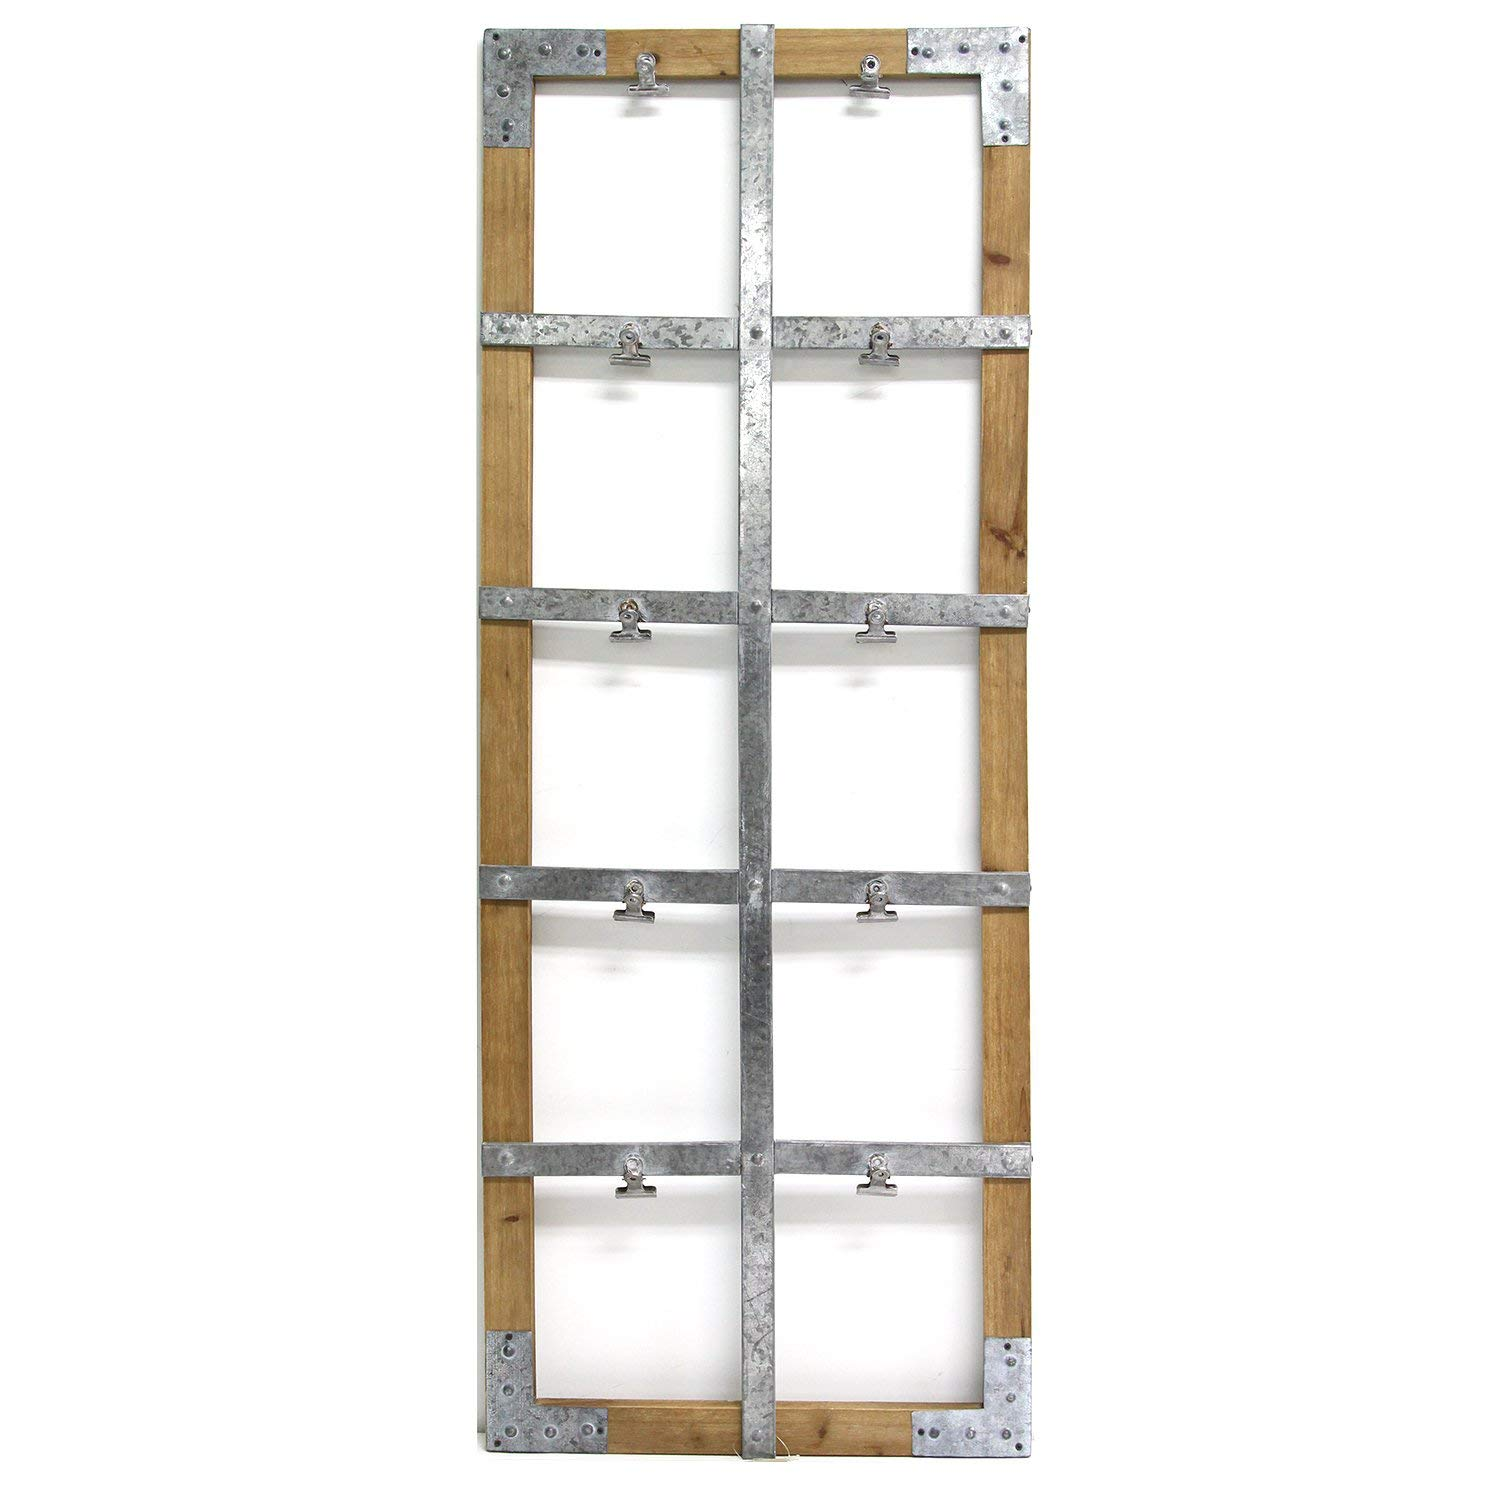 Stratton Home Decor Wood and Metal Photo Clip Wall Décor, Natural Wood/Galvanized